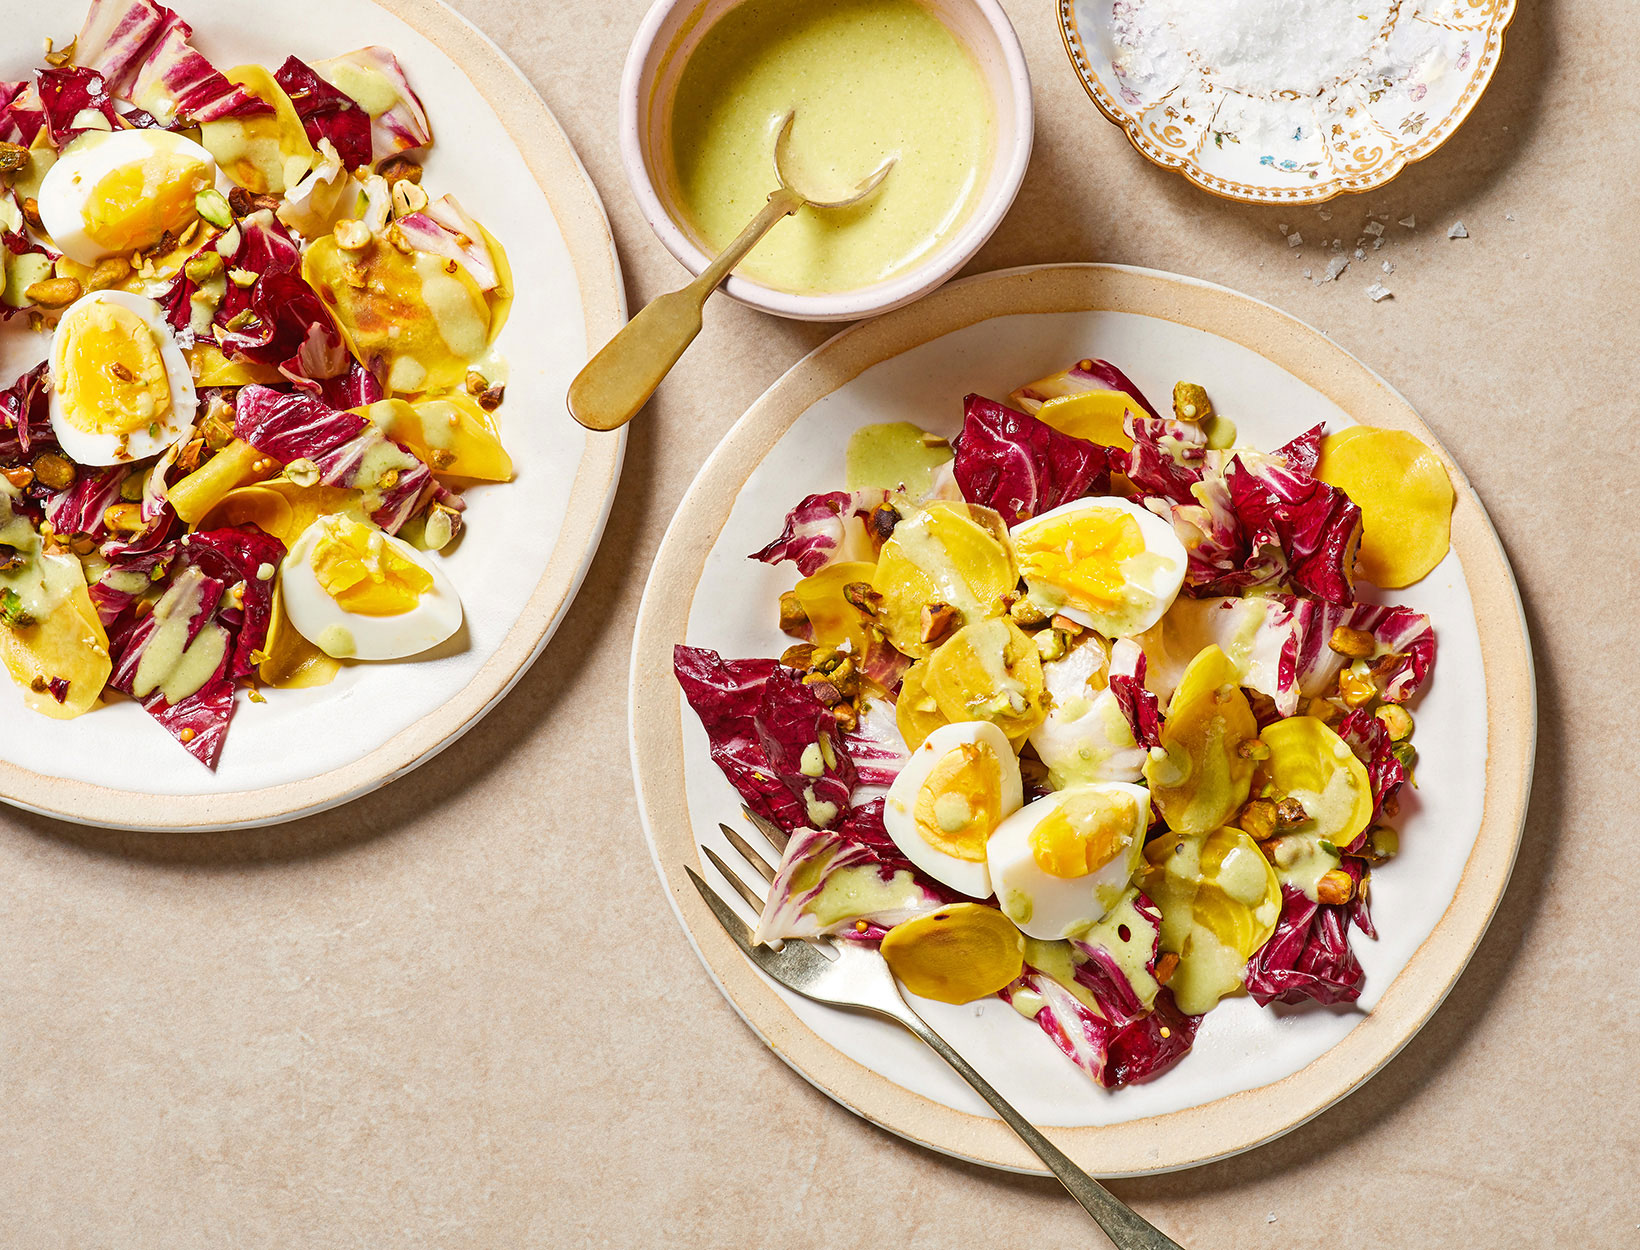 Radicchio and Pickled Beet Salad with Pistachio, Hard-Cooked Egg, and Tarragon Yogurt